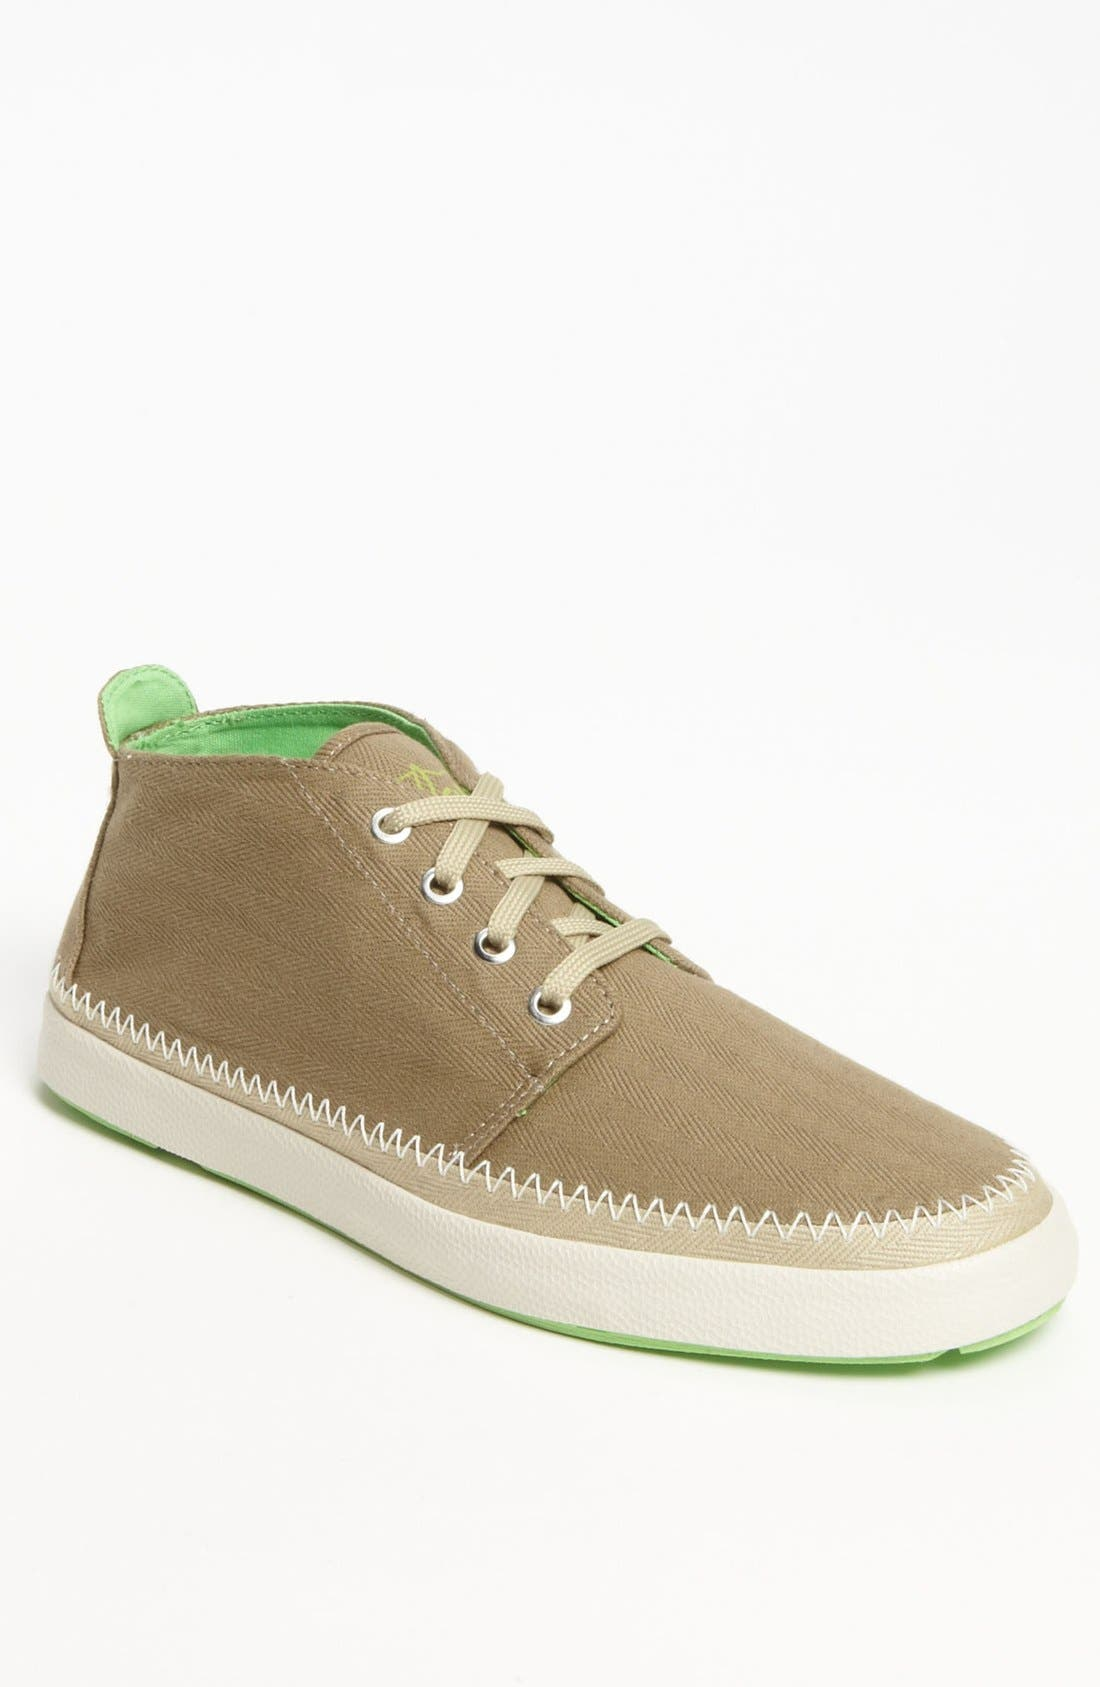 Alternate Image 1 Selected - Sperry Top-Sider® 'Drifter' Chukka Boot